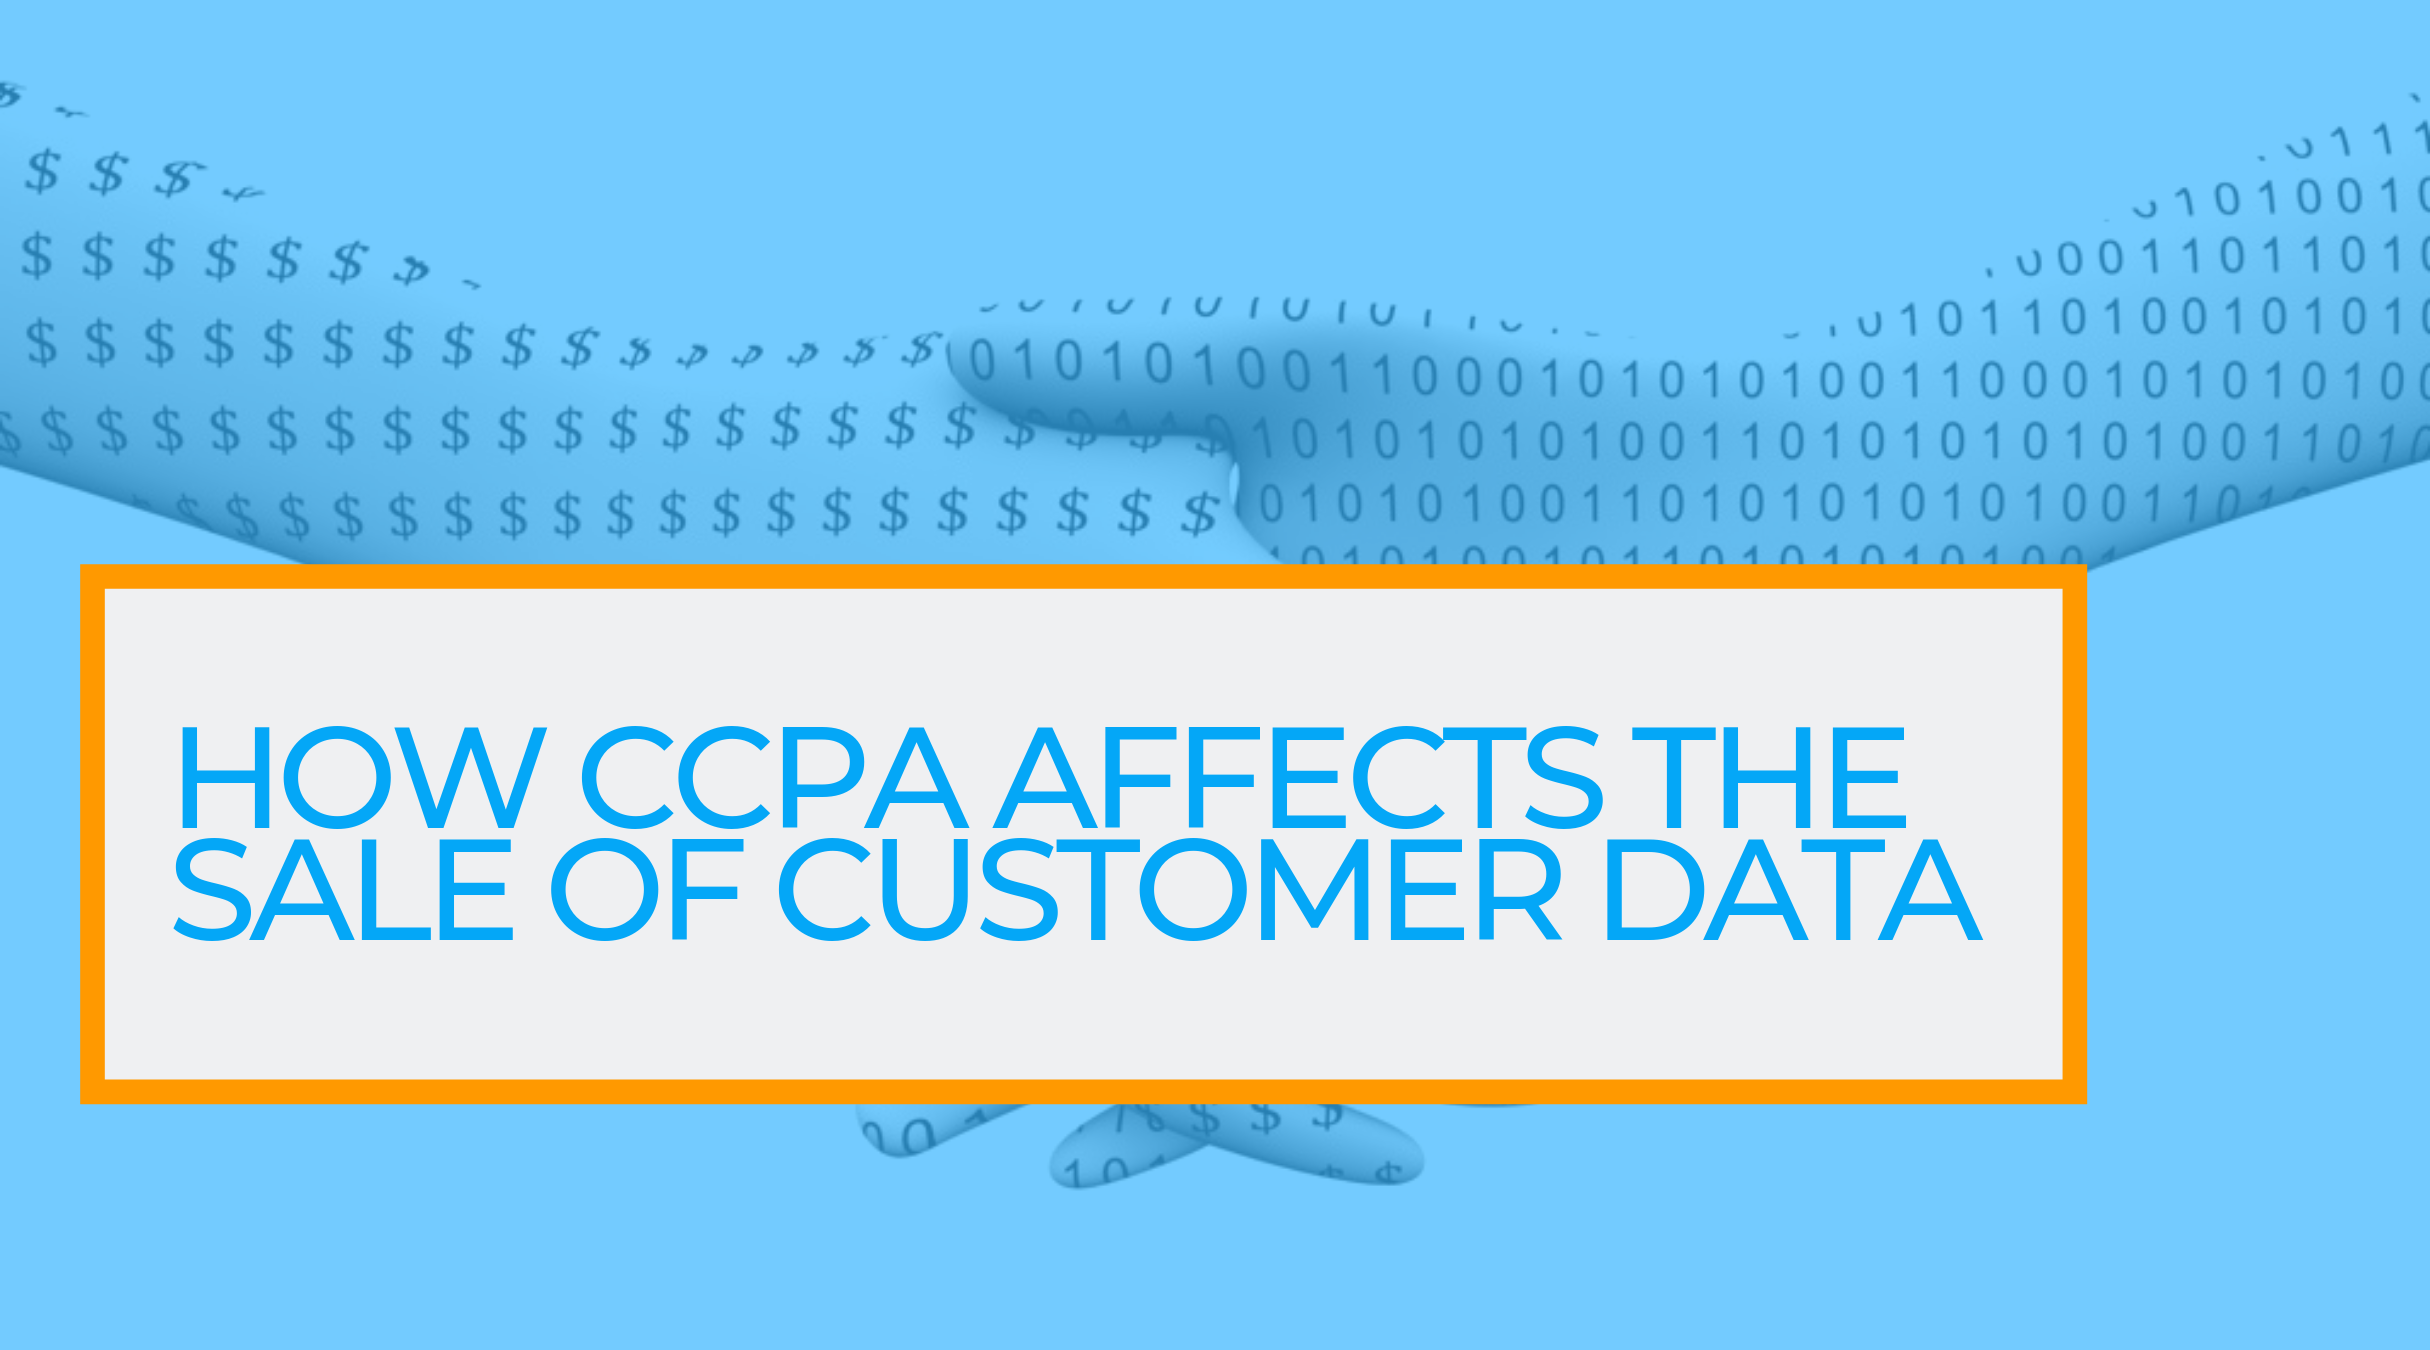 How CCPA Affects the Sale of Customer Data